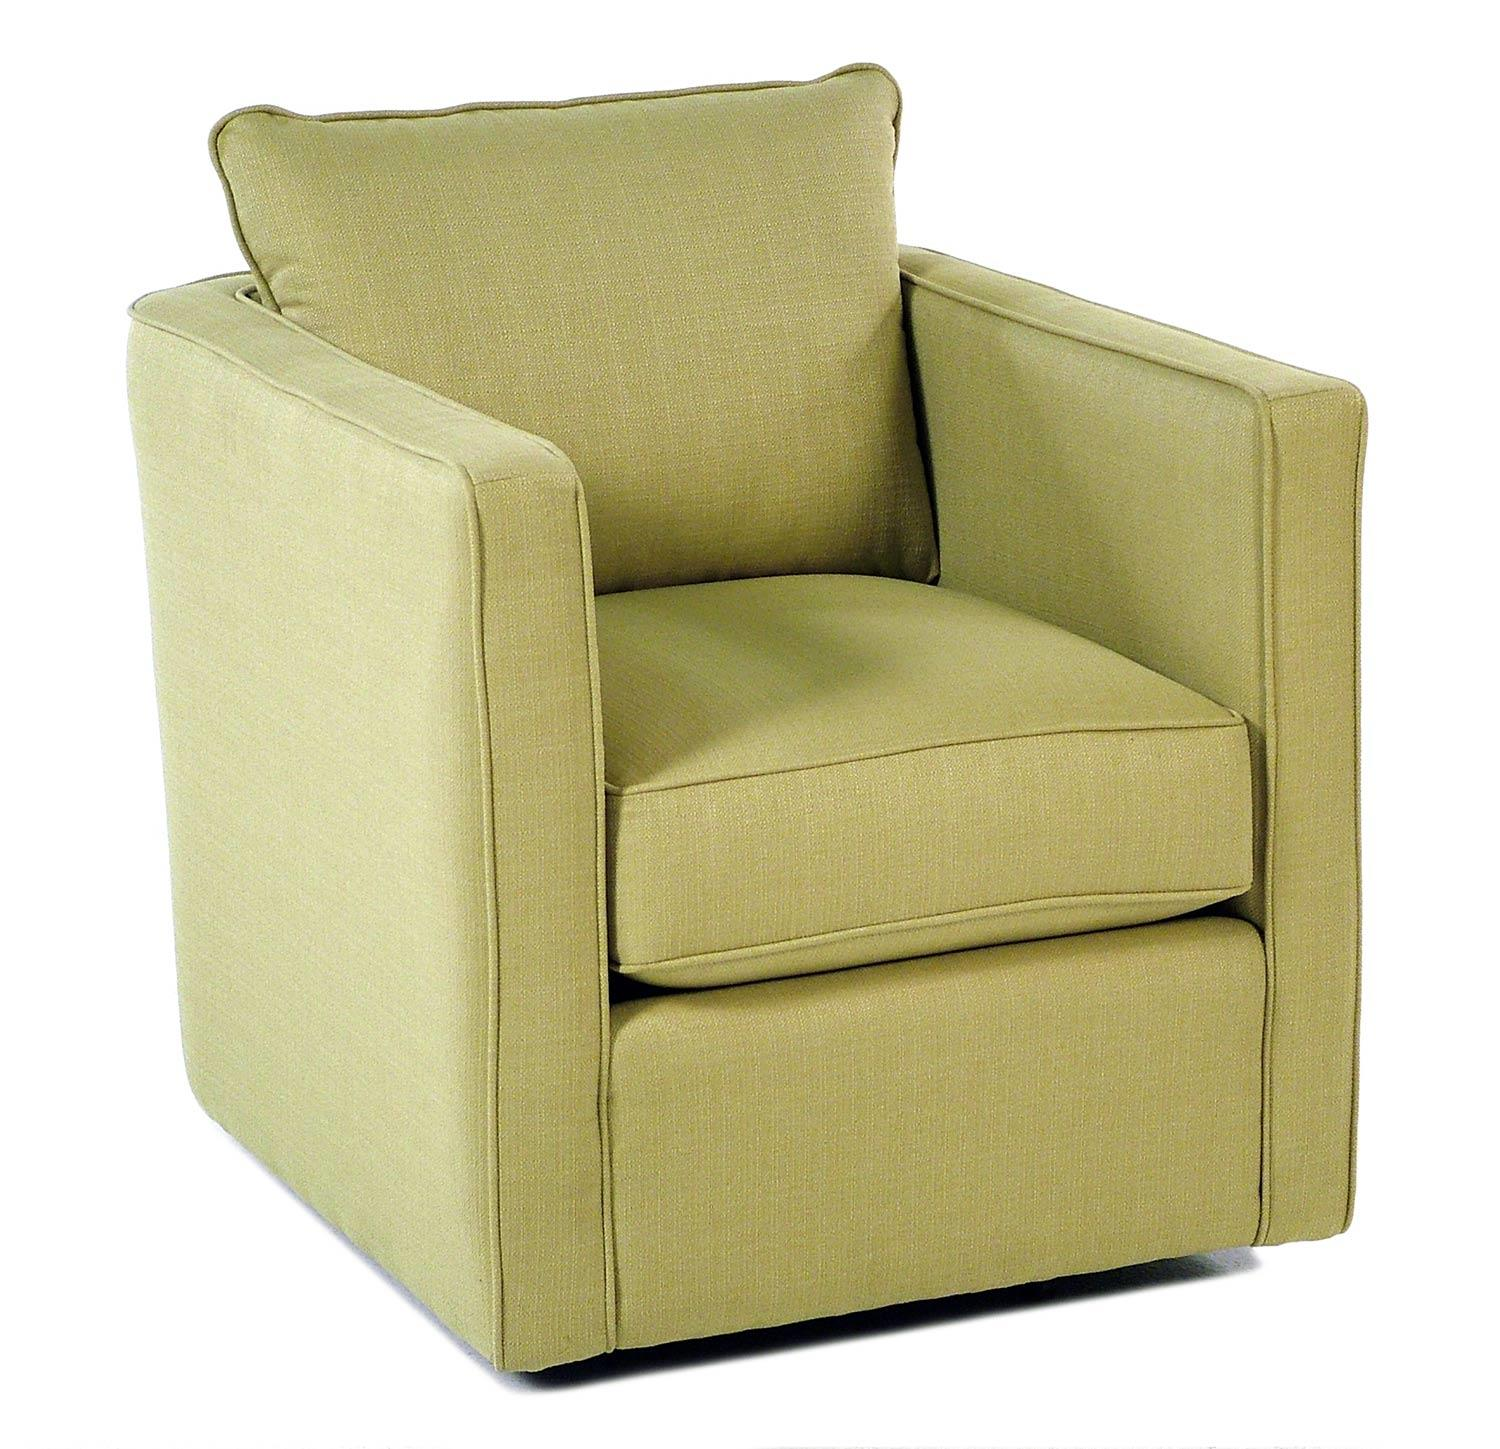 Decor-Rest Gatsby Swivel Chair - Item Number: 2050SC